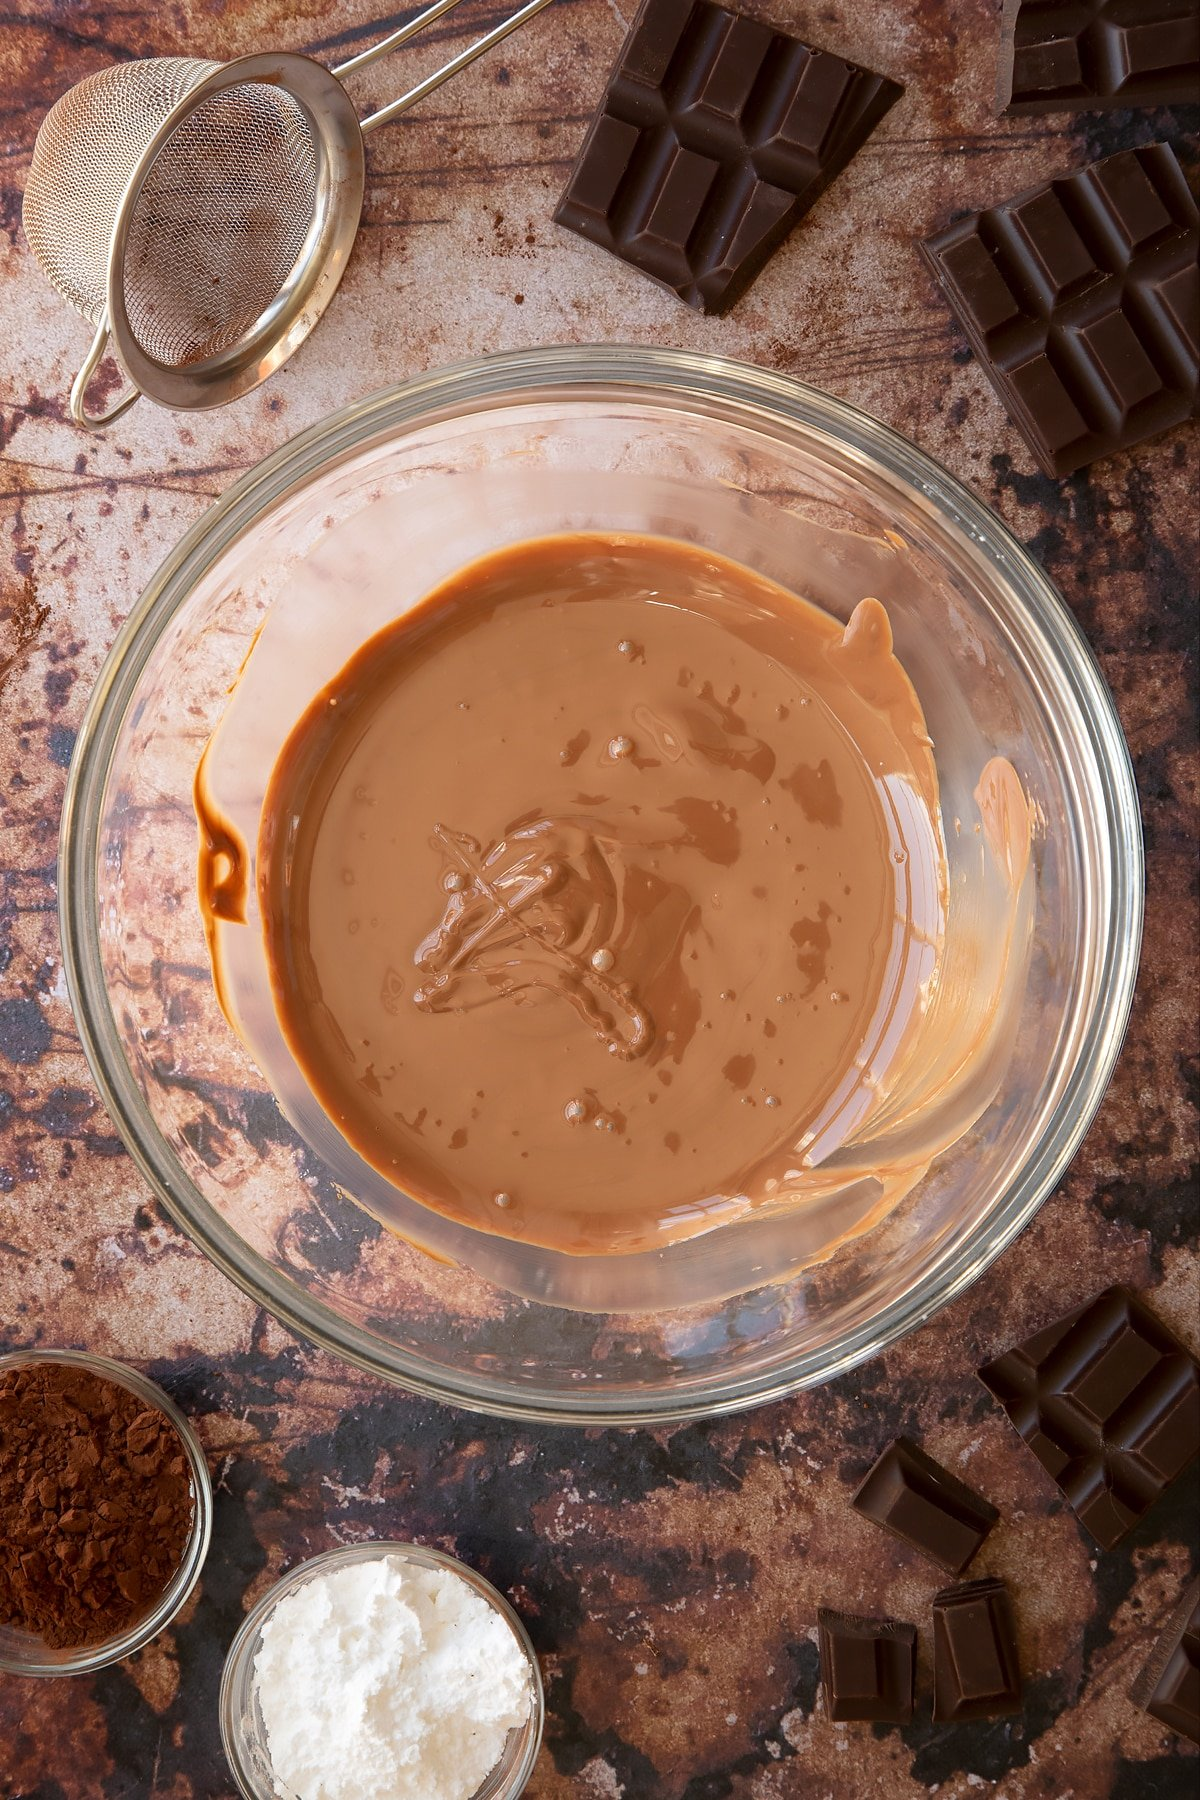 Melted chocolate in a glass mixing bowl. Ingredients for the caterpillar cake recipe surround the bowl.